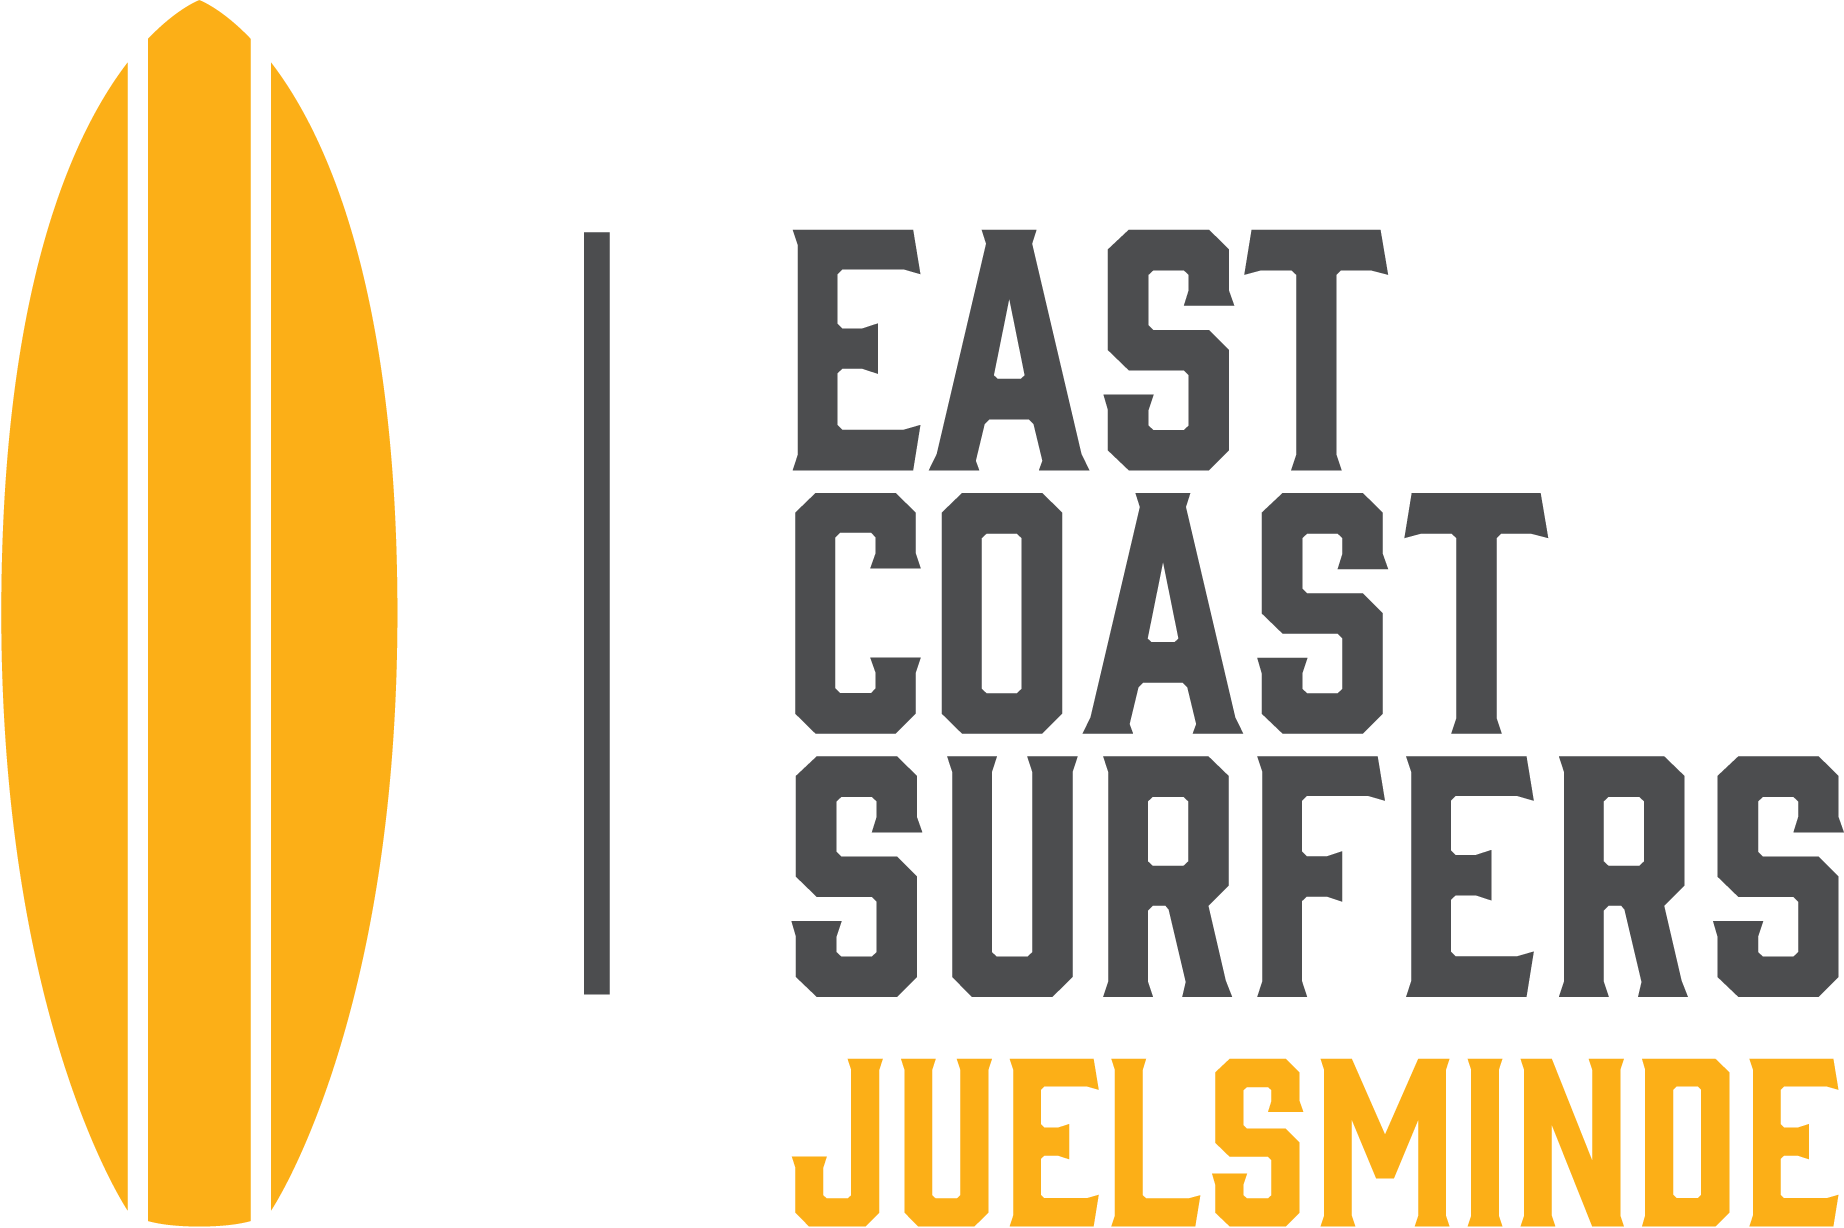 East Cost Surfers 7130